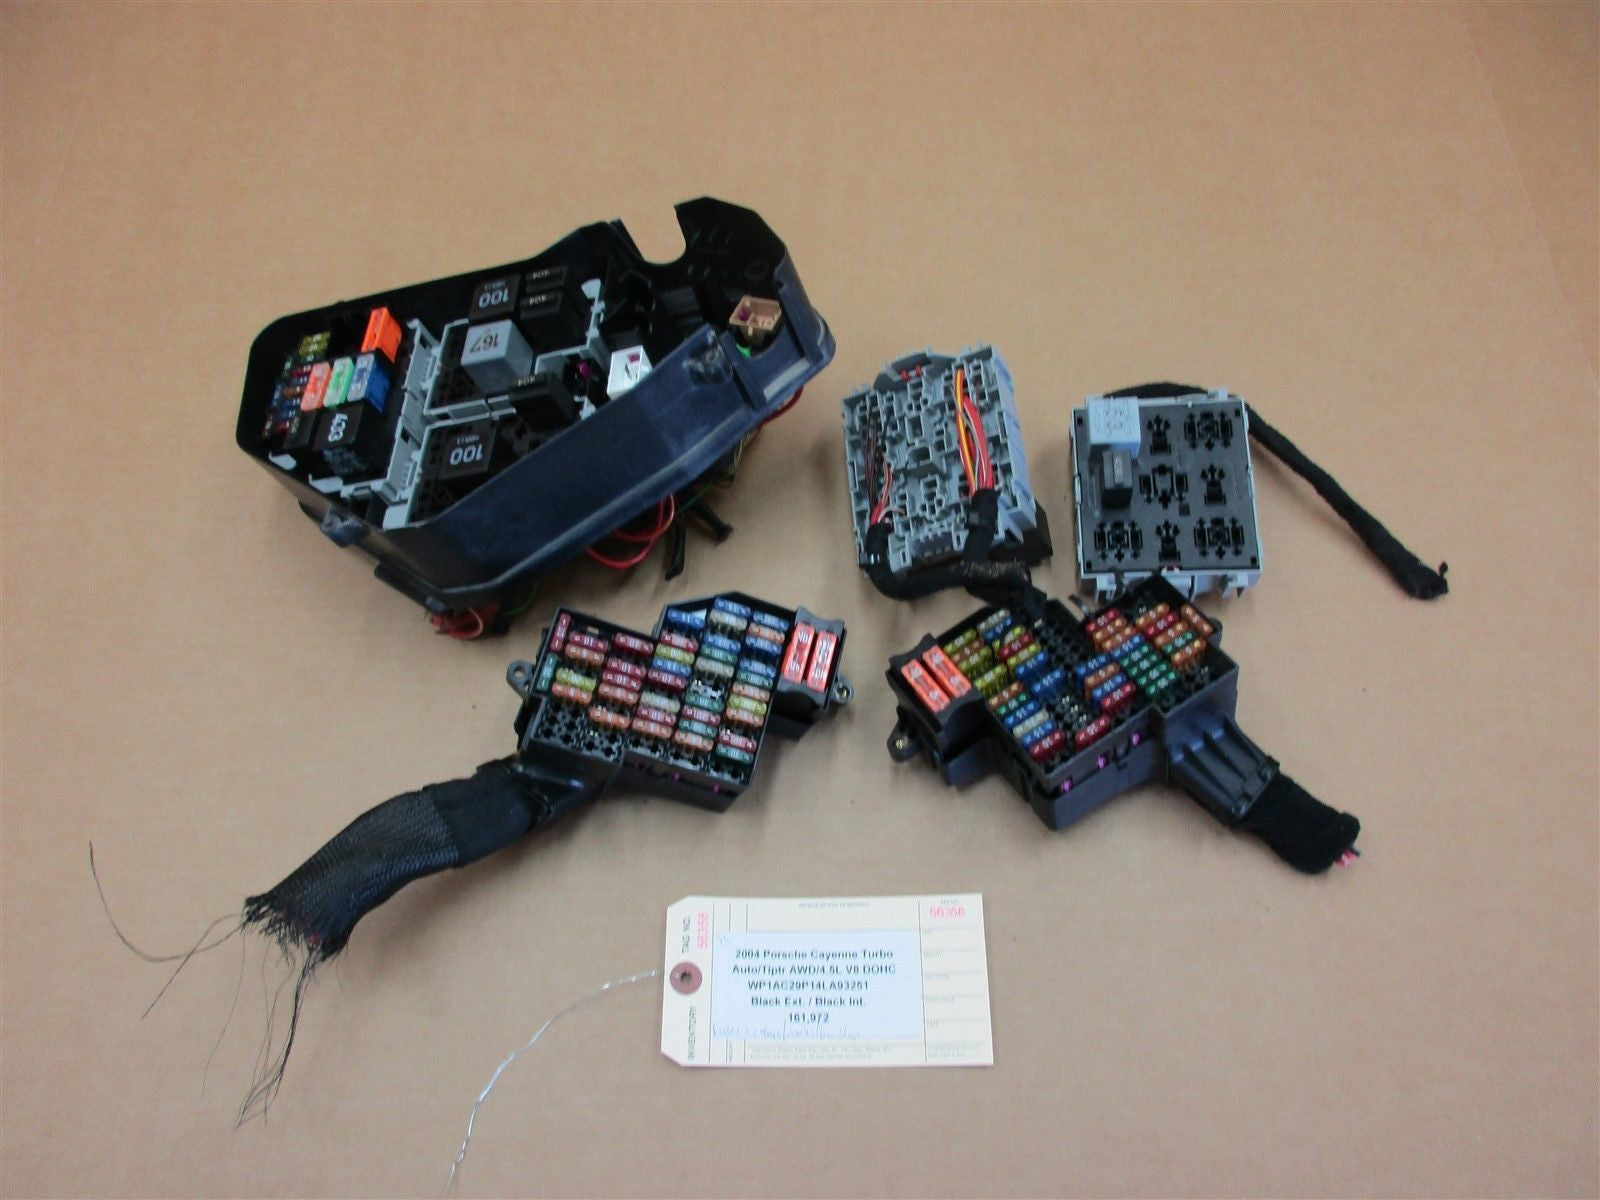 2004 Porsche Cayenne Fuse Box Diagram Wiring Library 2008 04 Turbo Awd 955 Relay 7l0941828 7l0937503a 2017